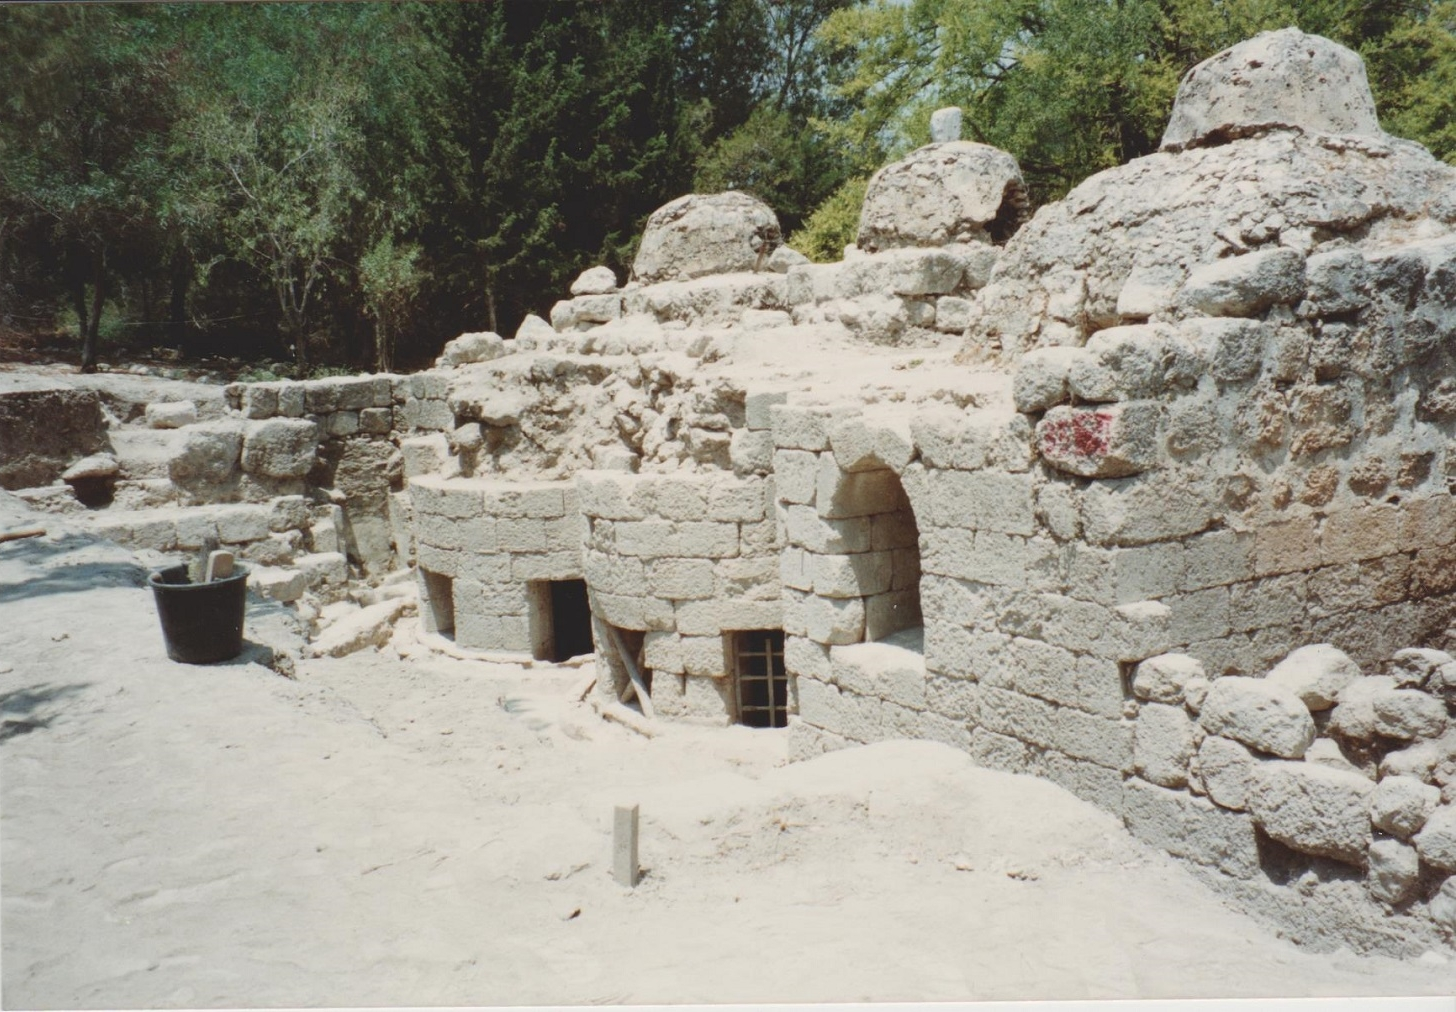 Roman and Byzantine bathhouse at Latrun, being excavated by Mordechair Gihon in 1990. Visited with Richard Harper the (then) Director of the BSAJ (British School of Archaeology in Jerusalem). Credit: Eleanor Scott